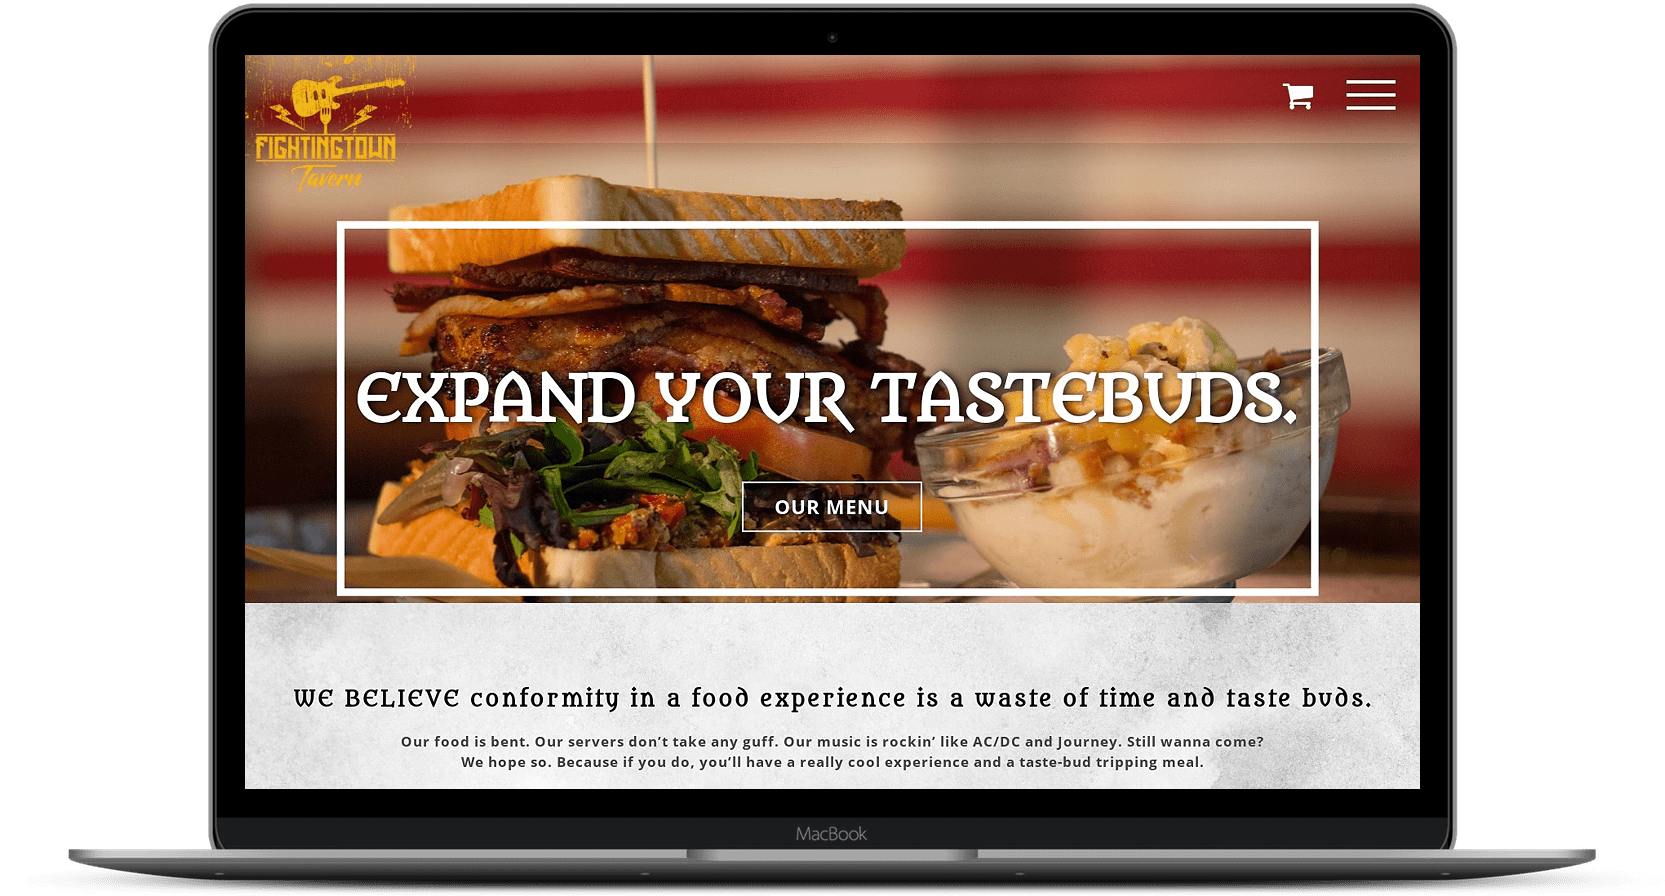 Expand your taste buds menu on screen